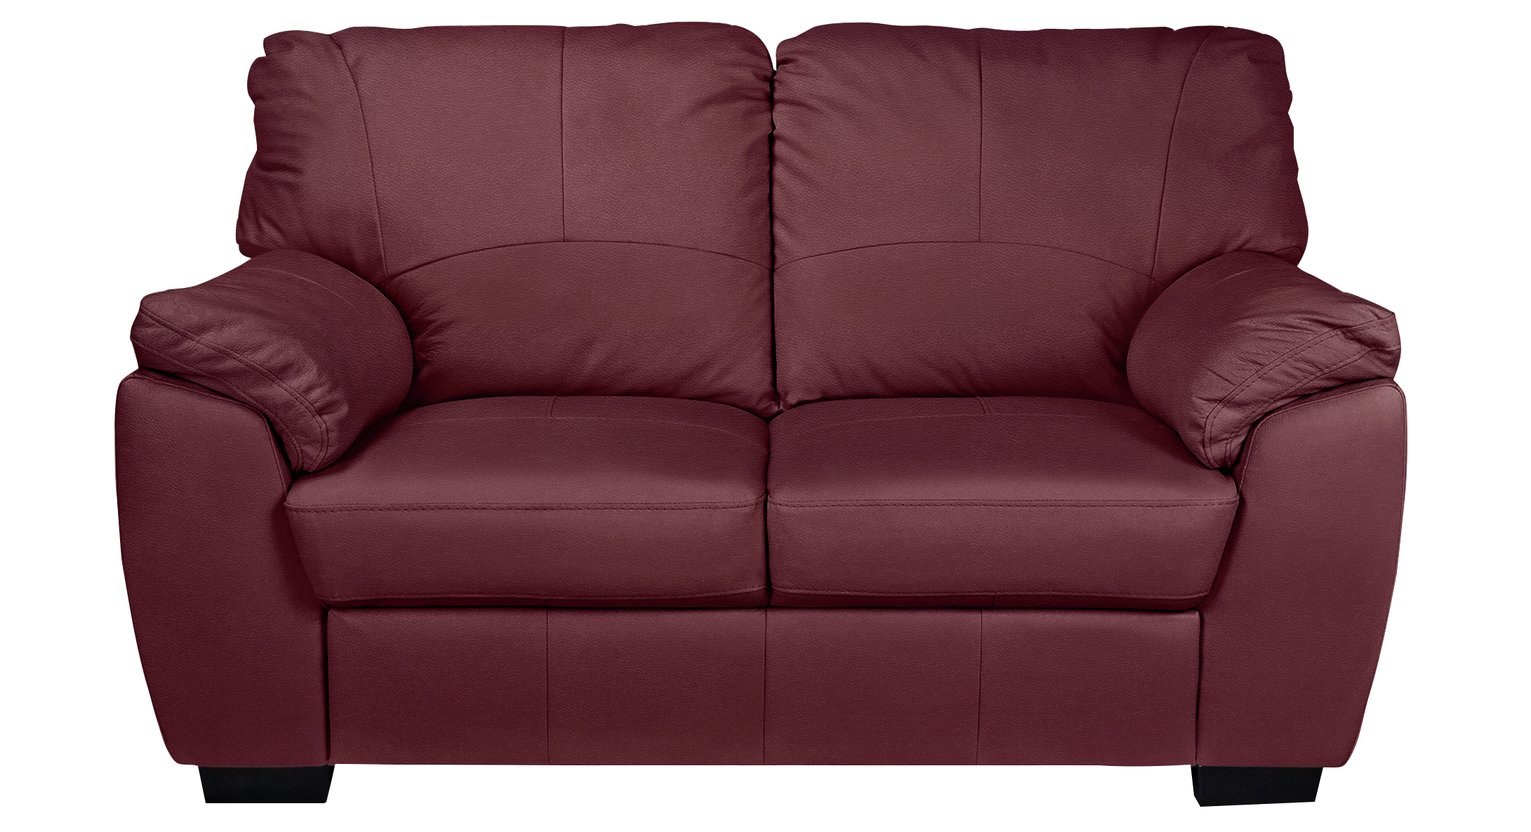 leather red sofa macy s midnight blue results for argos home milano pair of 2 seater